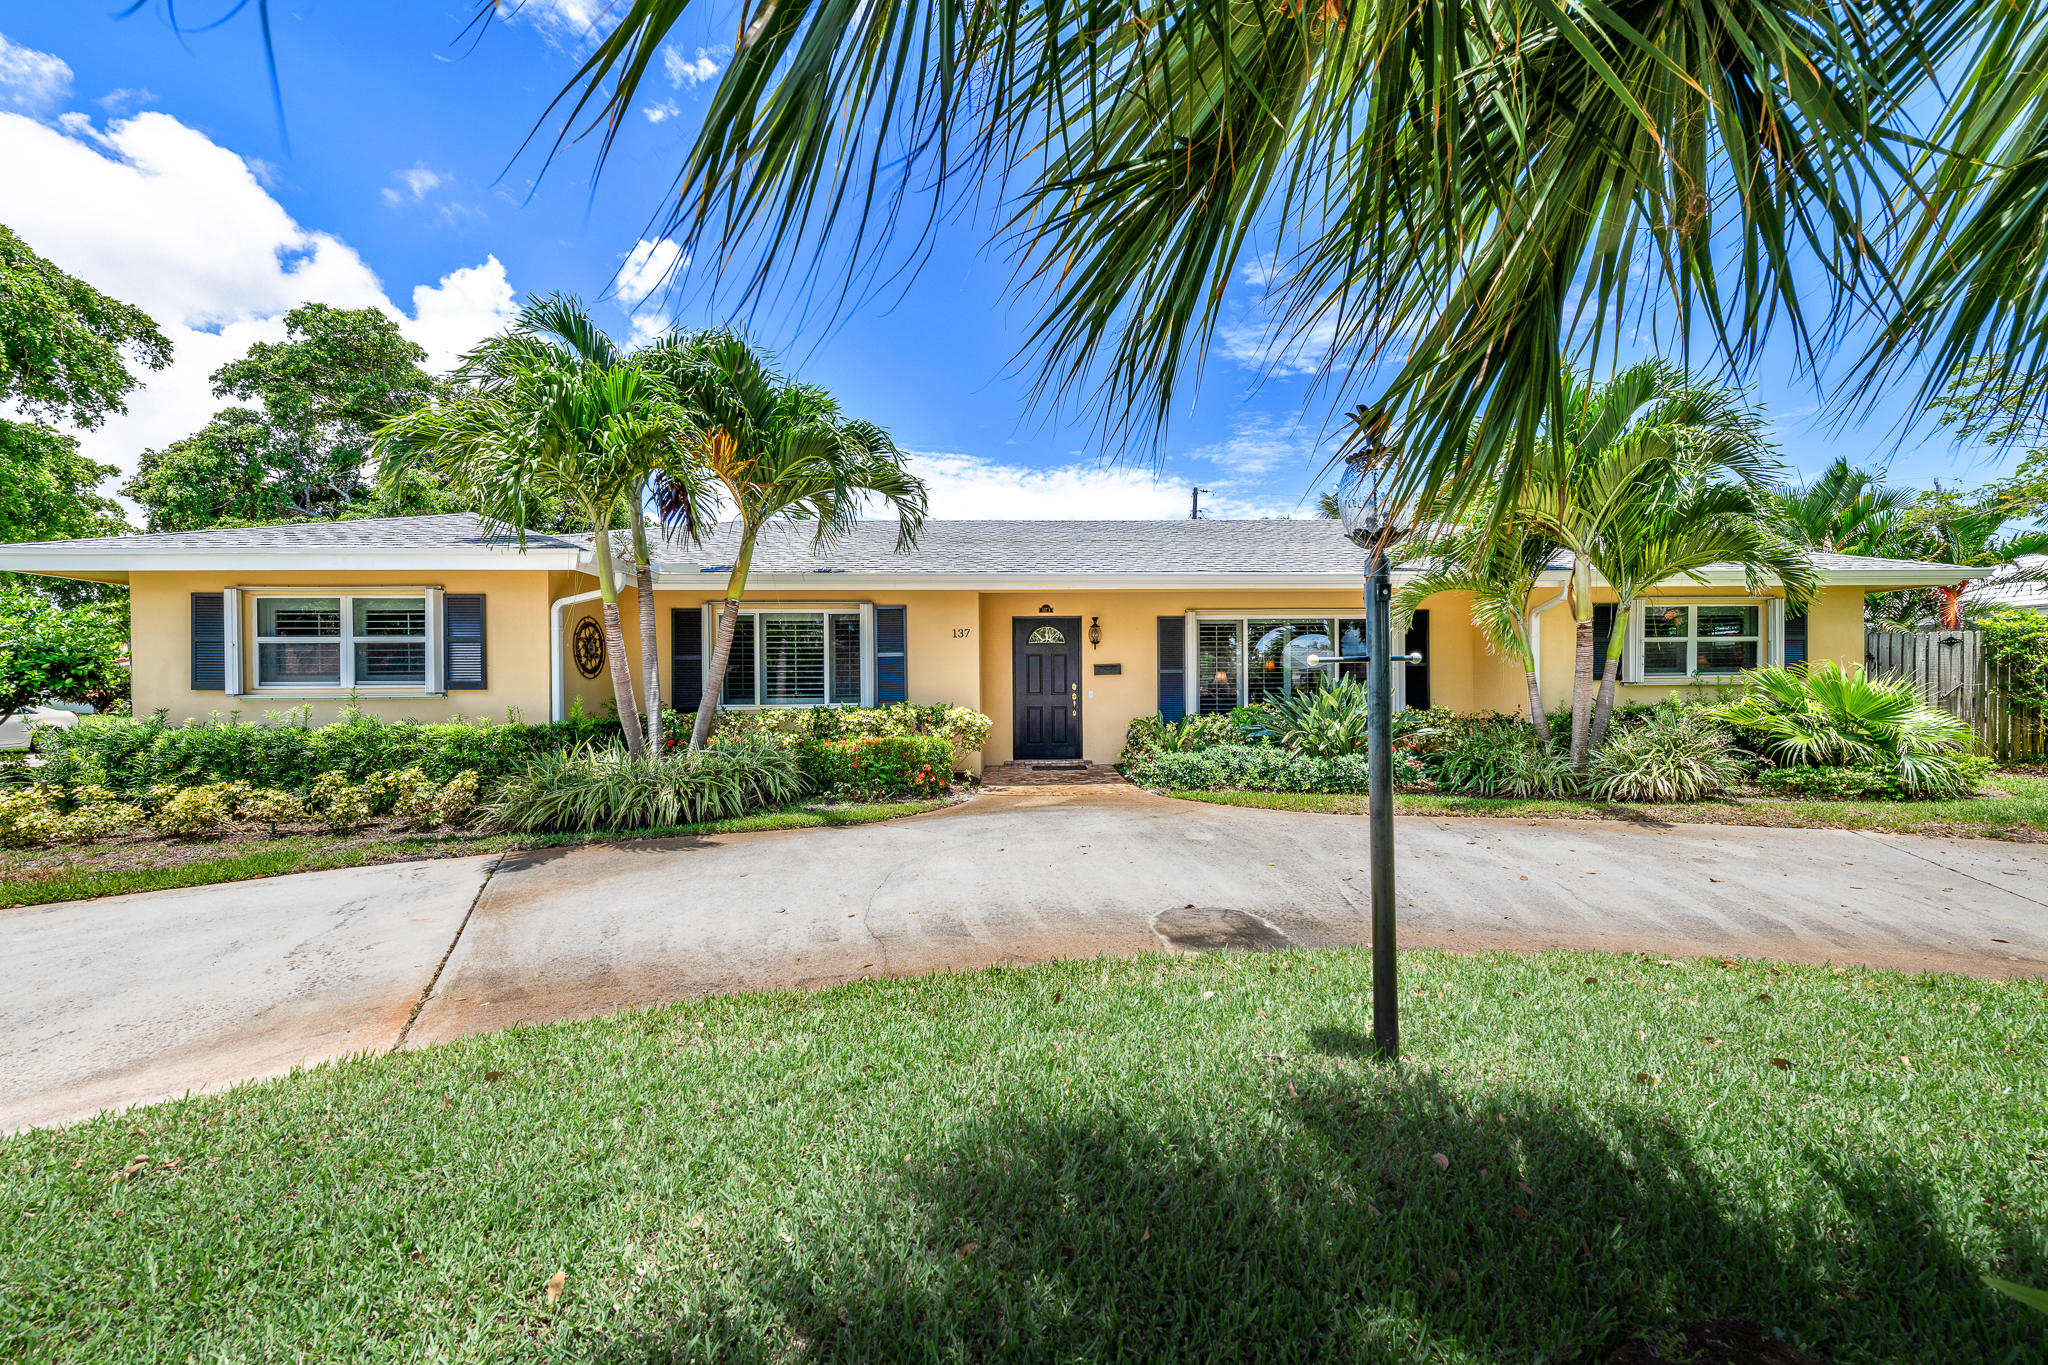 137 Dory Road, North Palm Beach, Florida 33408, 3 Bedrooms Bedrooms, ,3 BathroomsBathrooms,A,Single family,Dory,RX-10476009